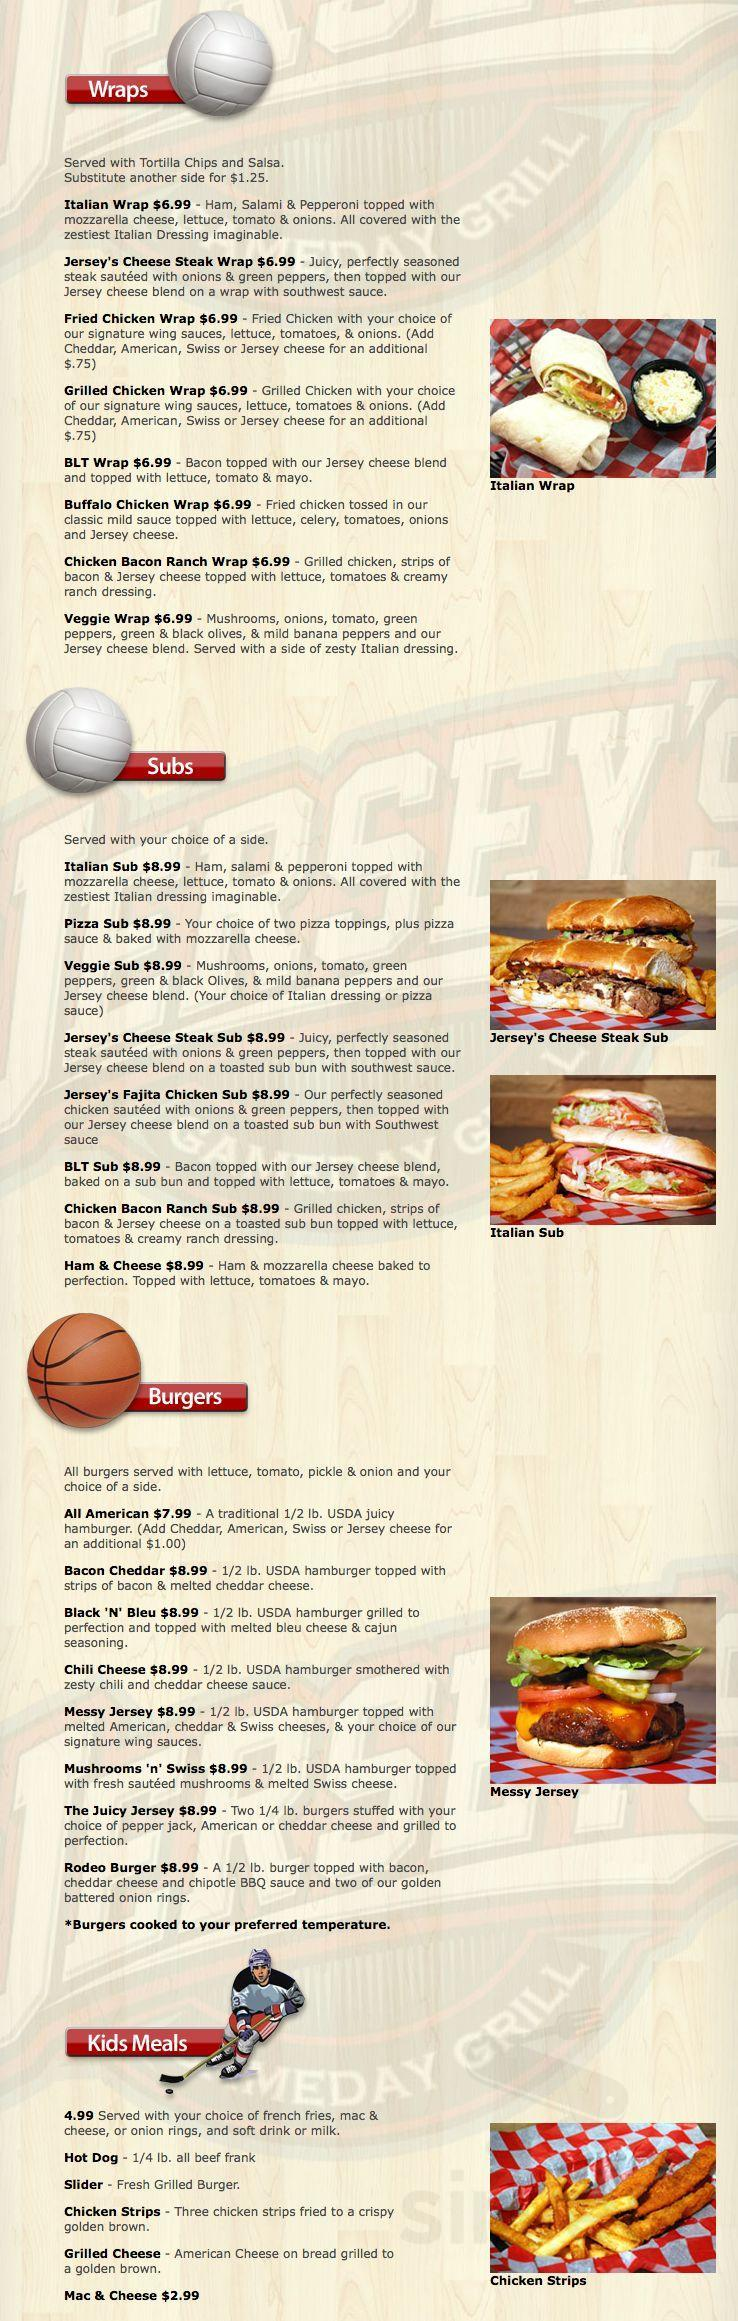 Jersey's Game Day Grill - Defiance menu in Defiance, Ohio, USA